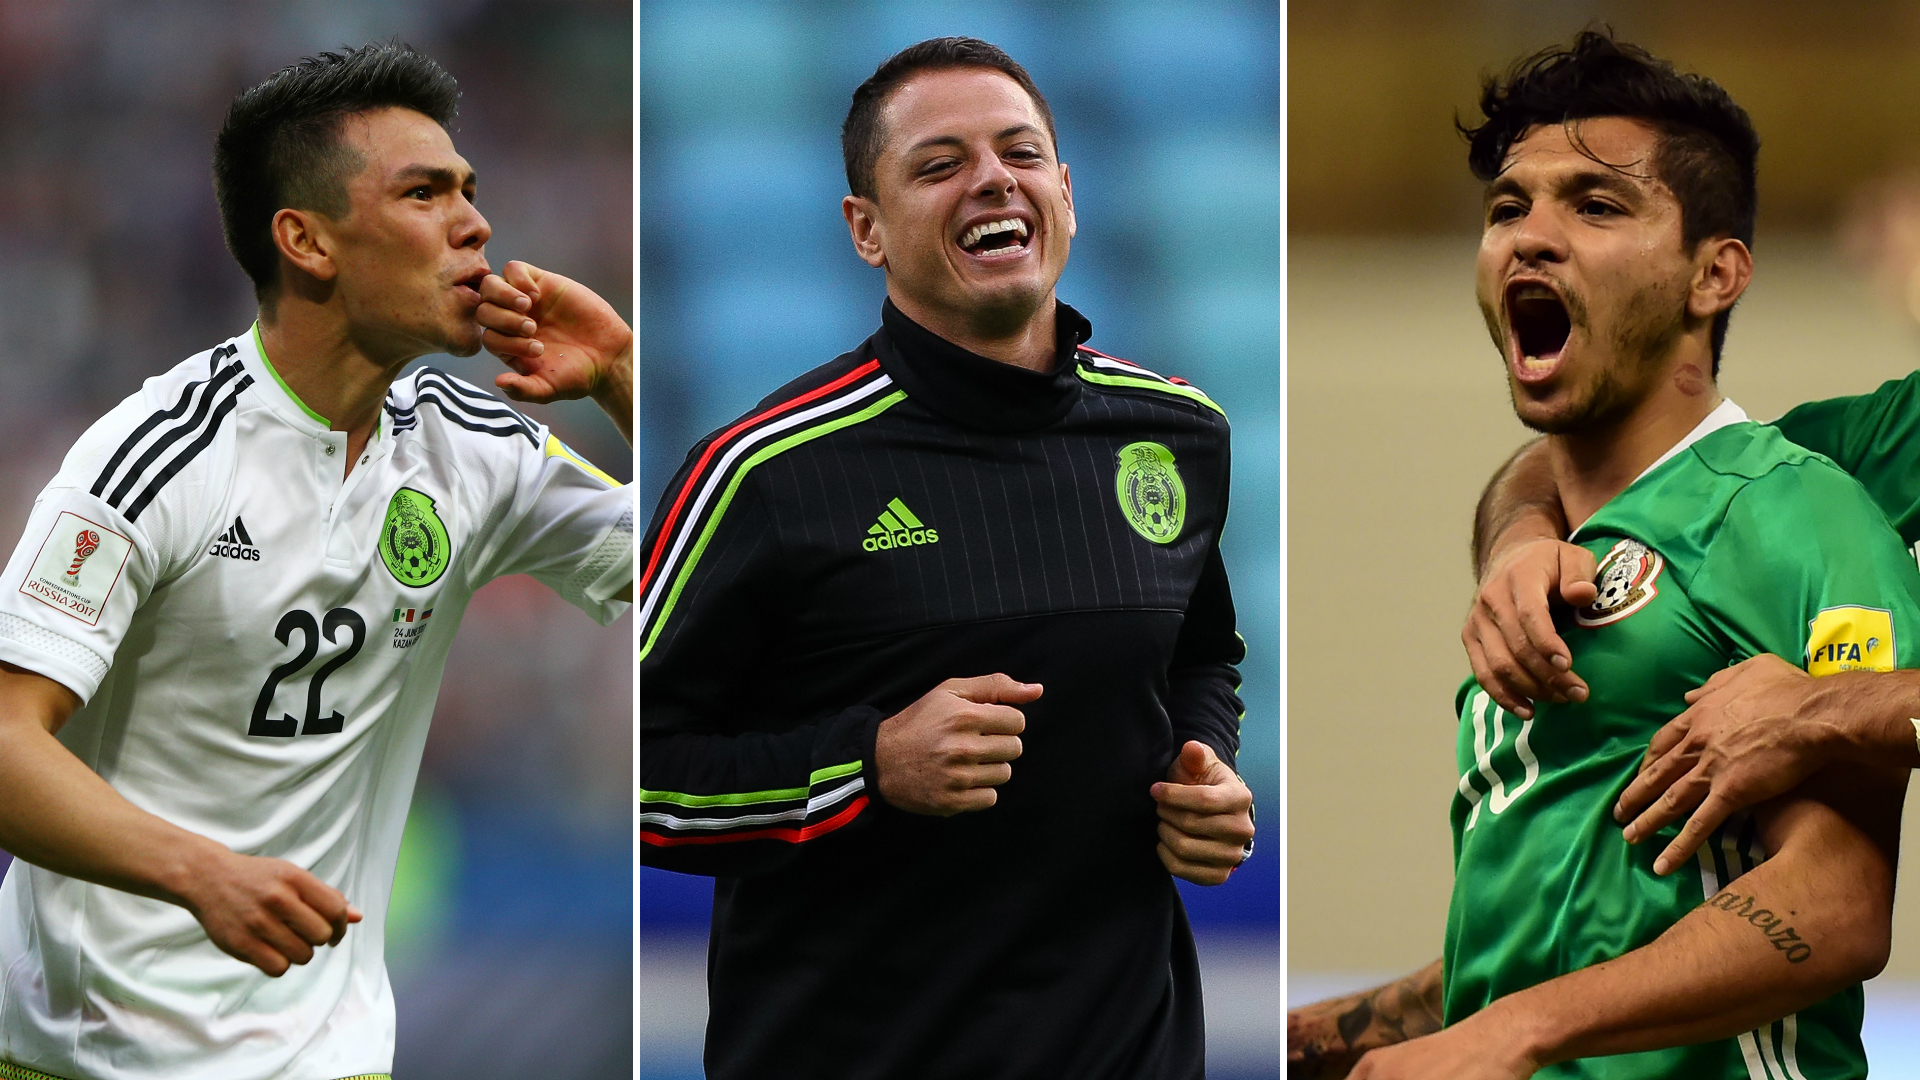 Lozano - Chicharito - Tecatito